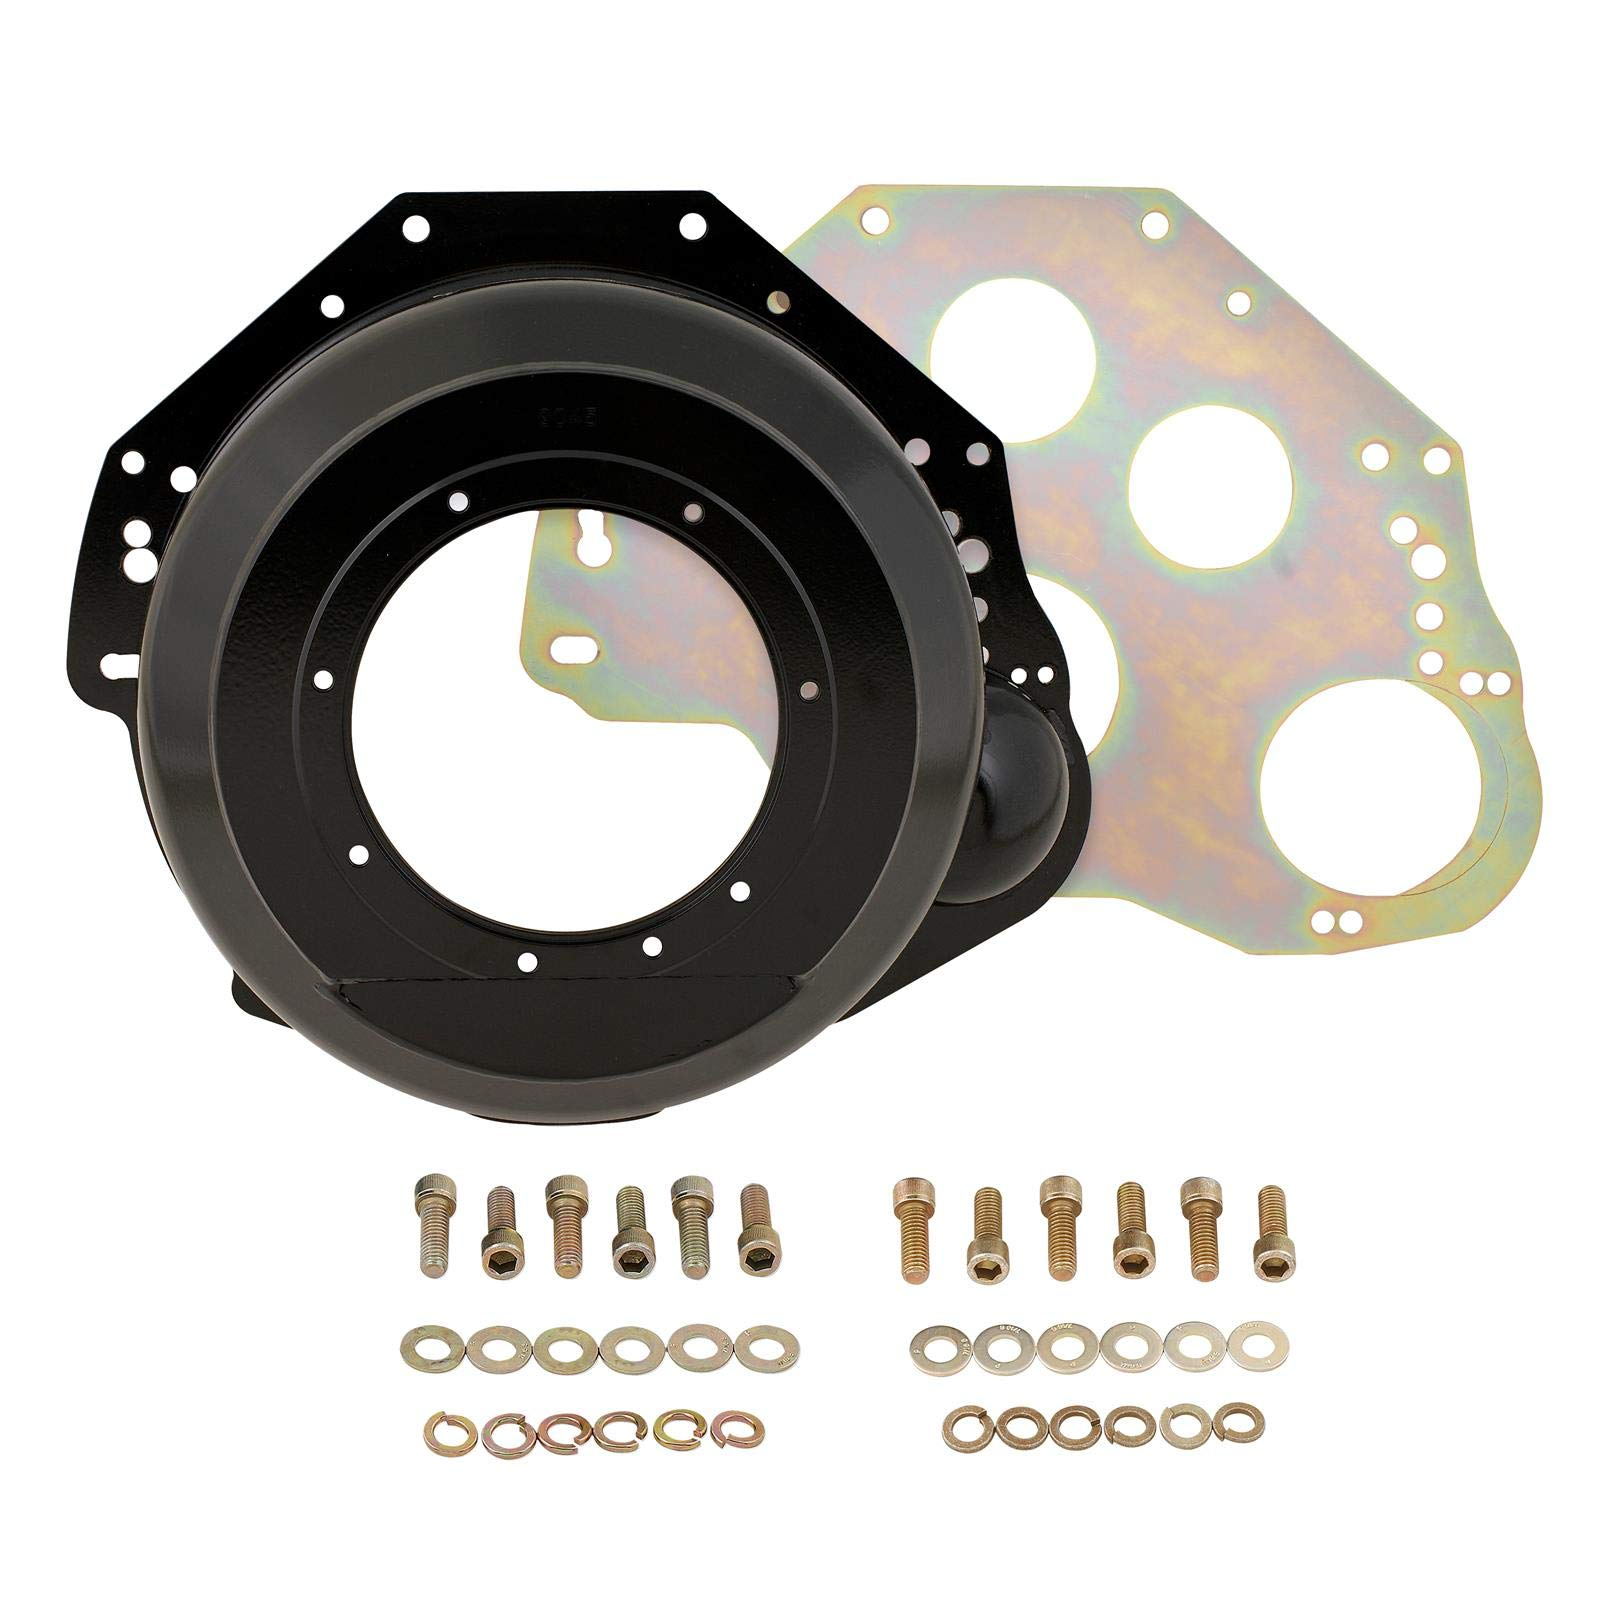 QuickTime RM-9045 Bellhousing for Small Block Chevy/Big Block Chevy/Small Block Ford